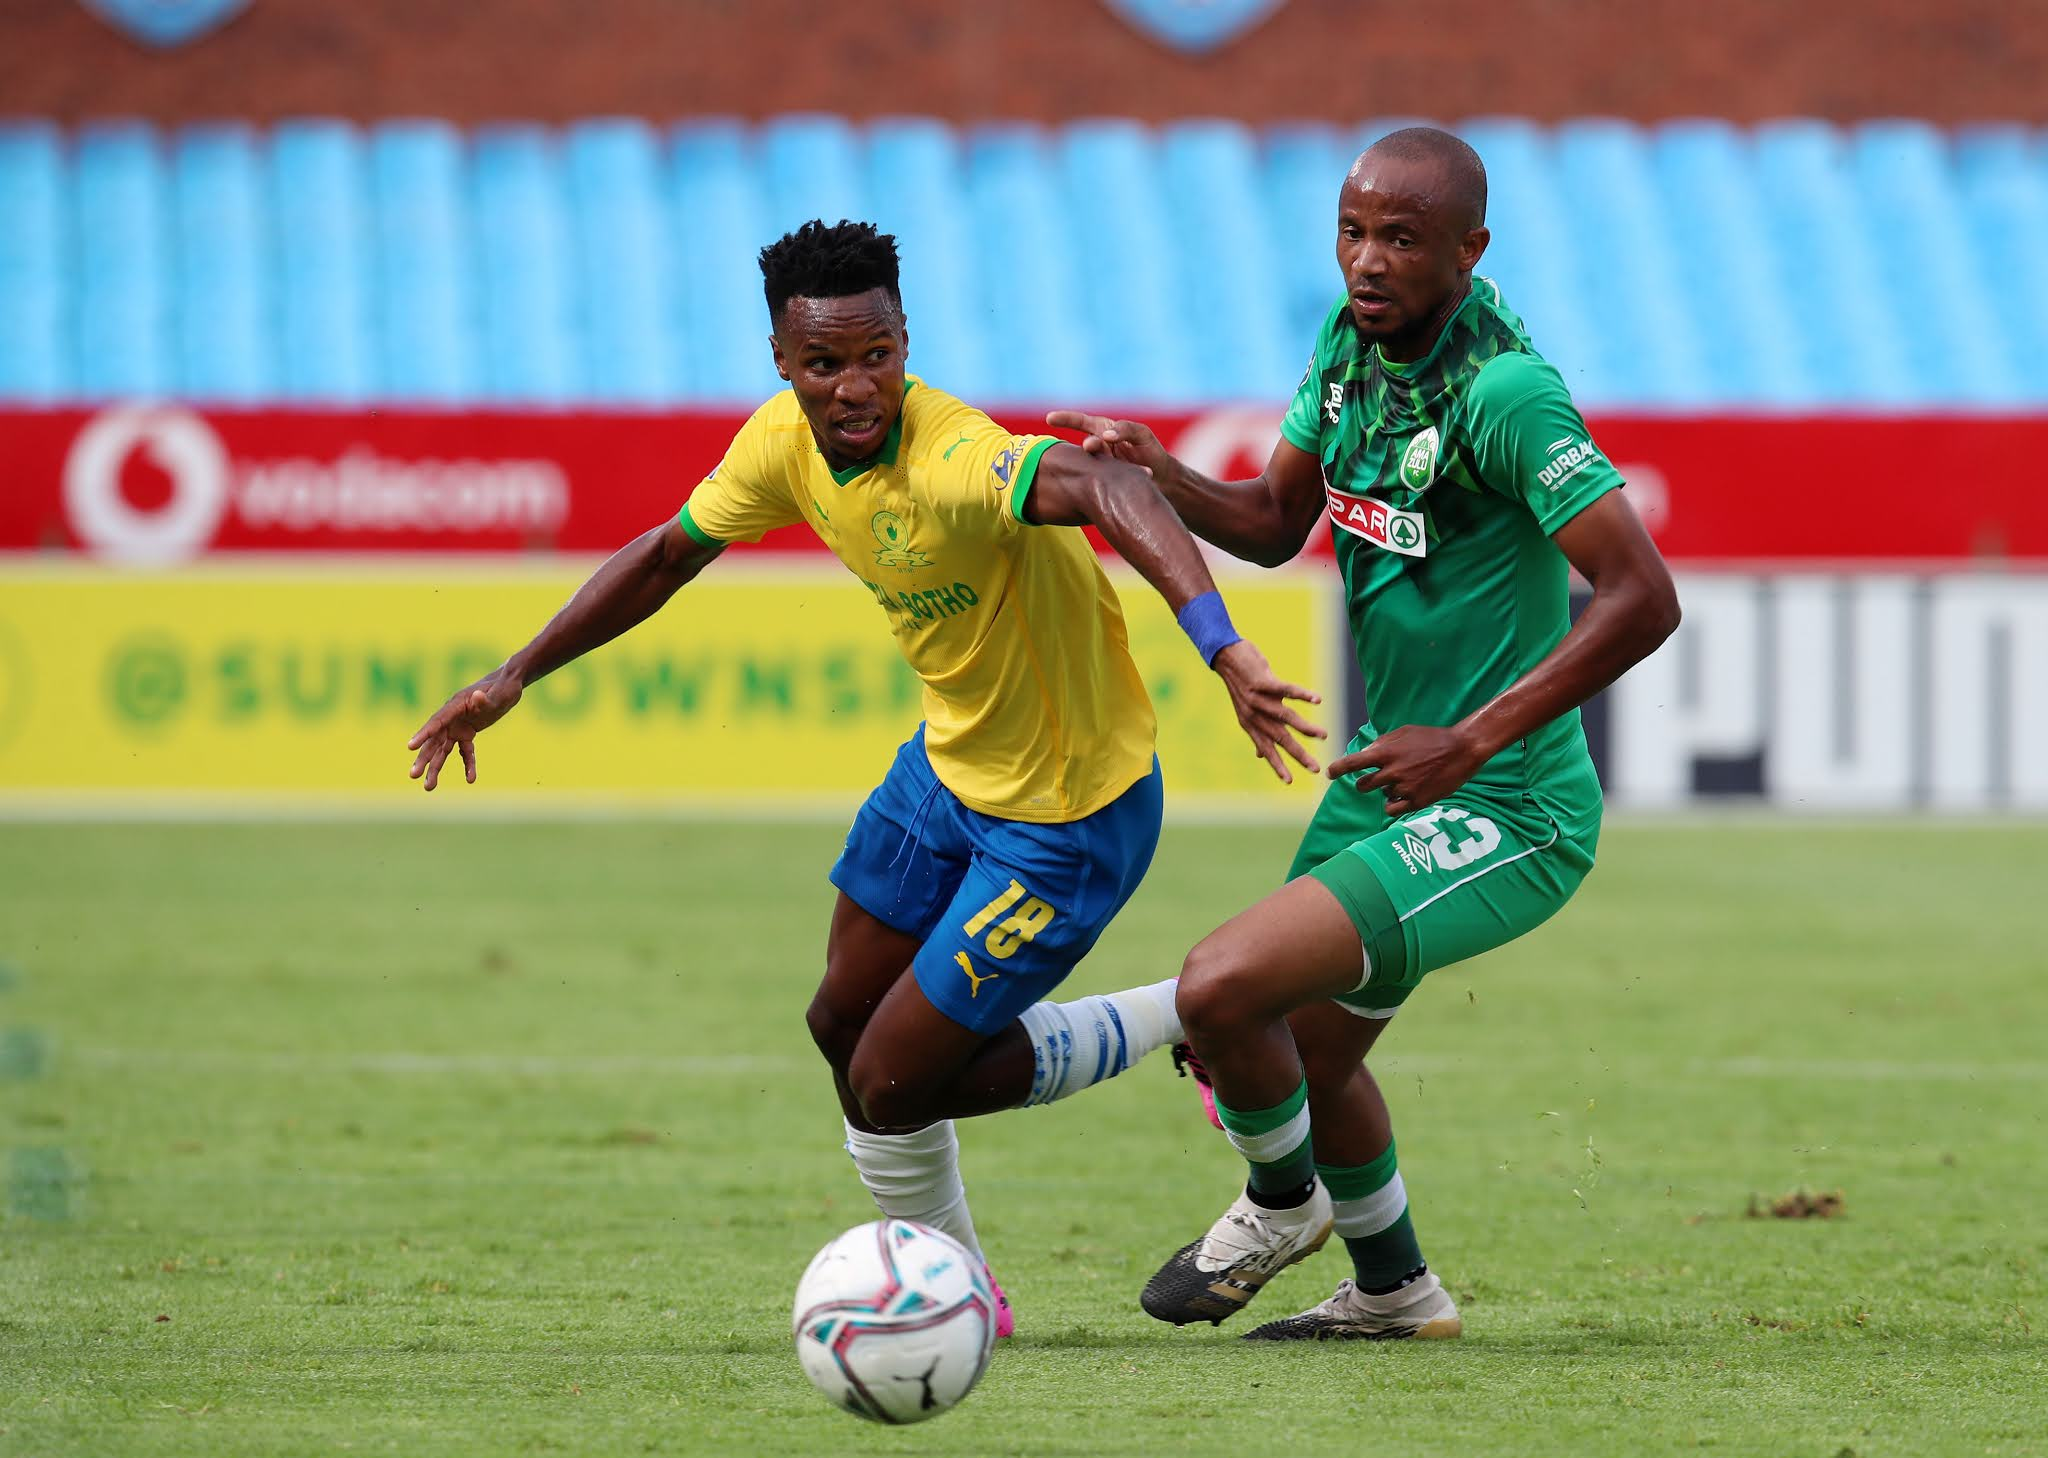 AmaZulu host champions Mamelodi Sundowns in the highlight of this week's action